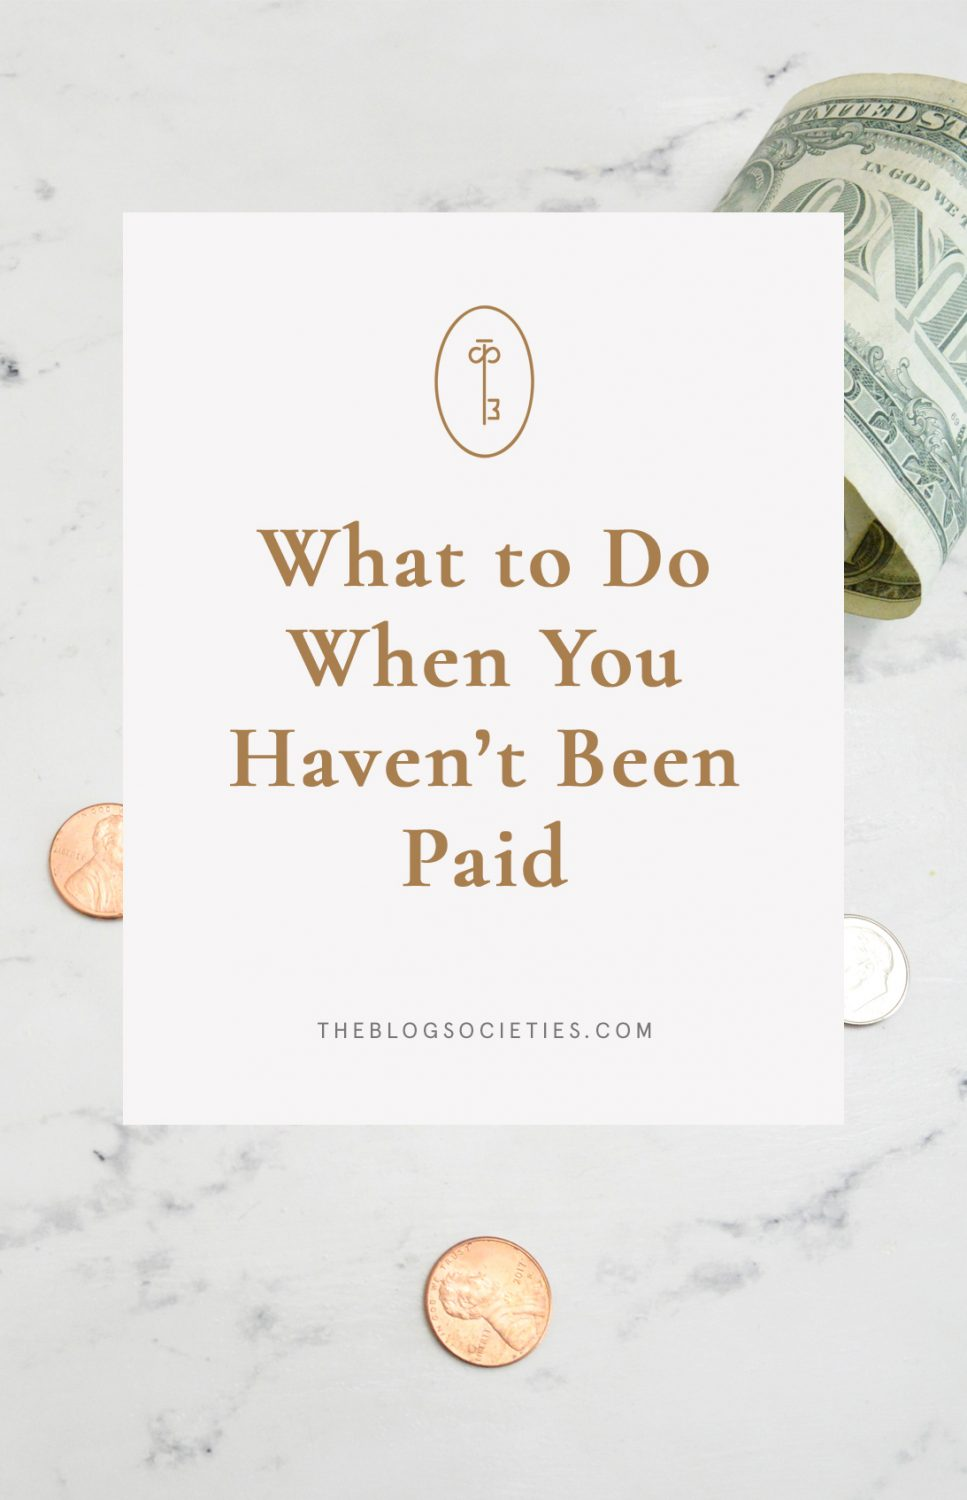 What to Do When You Haven't Been Paid | The Blog Societies